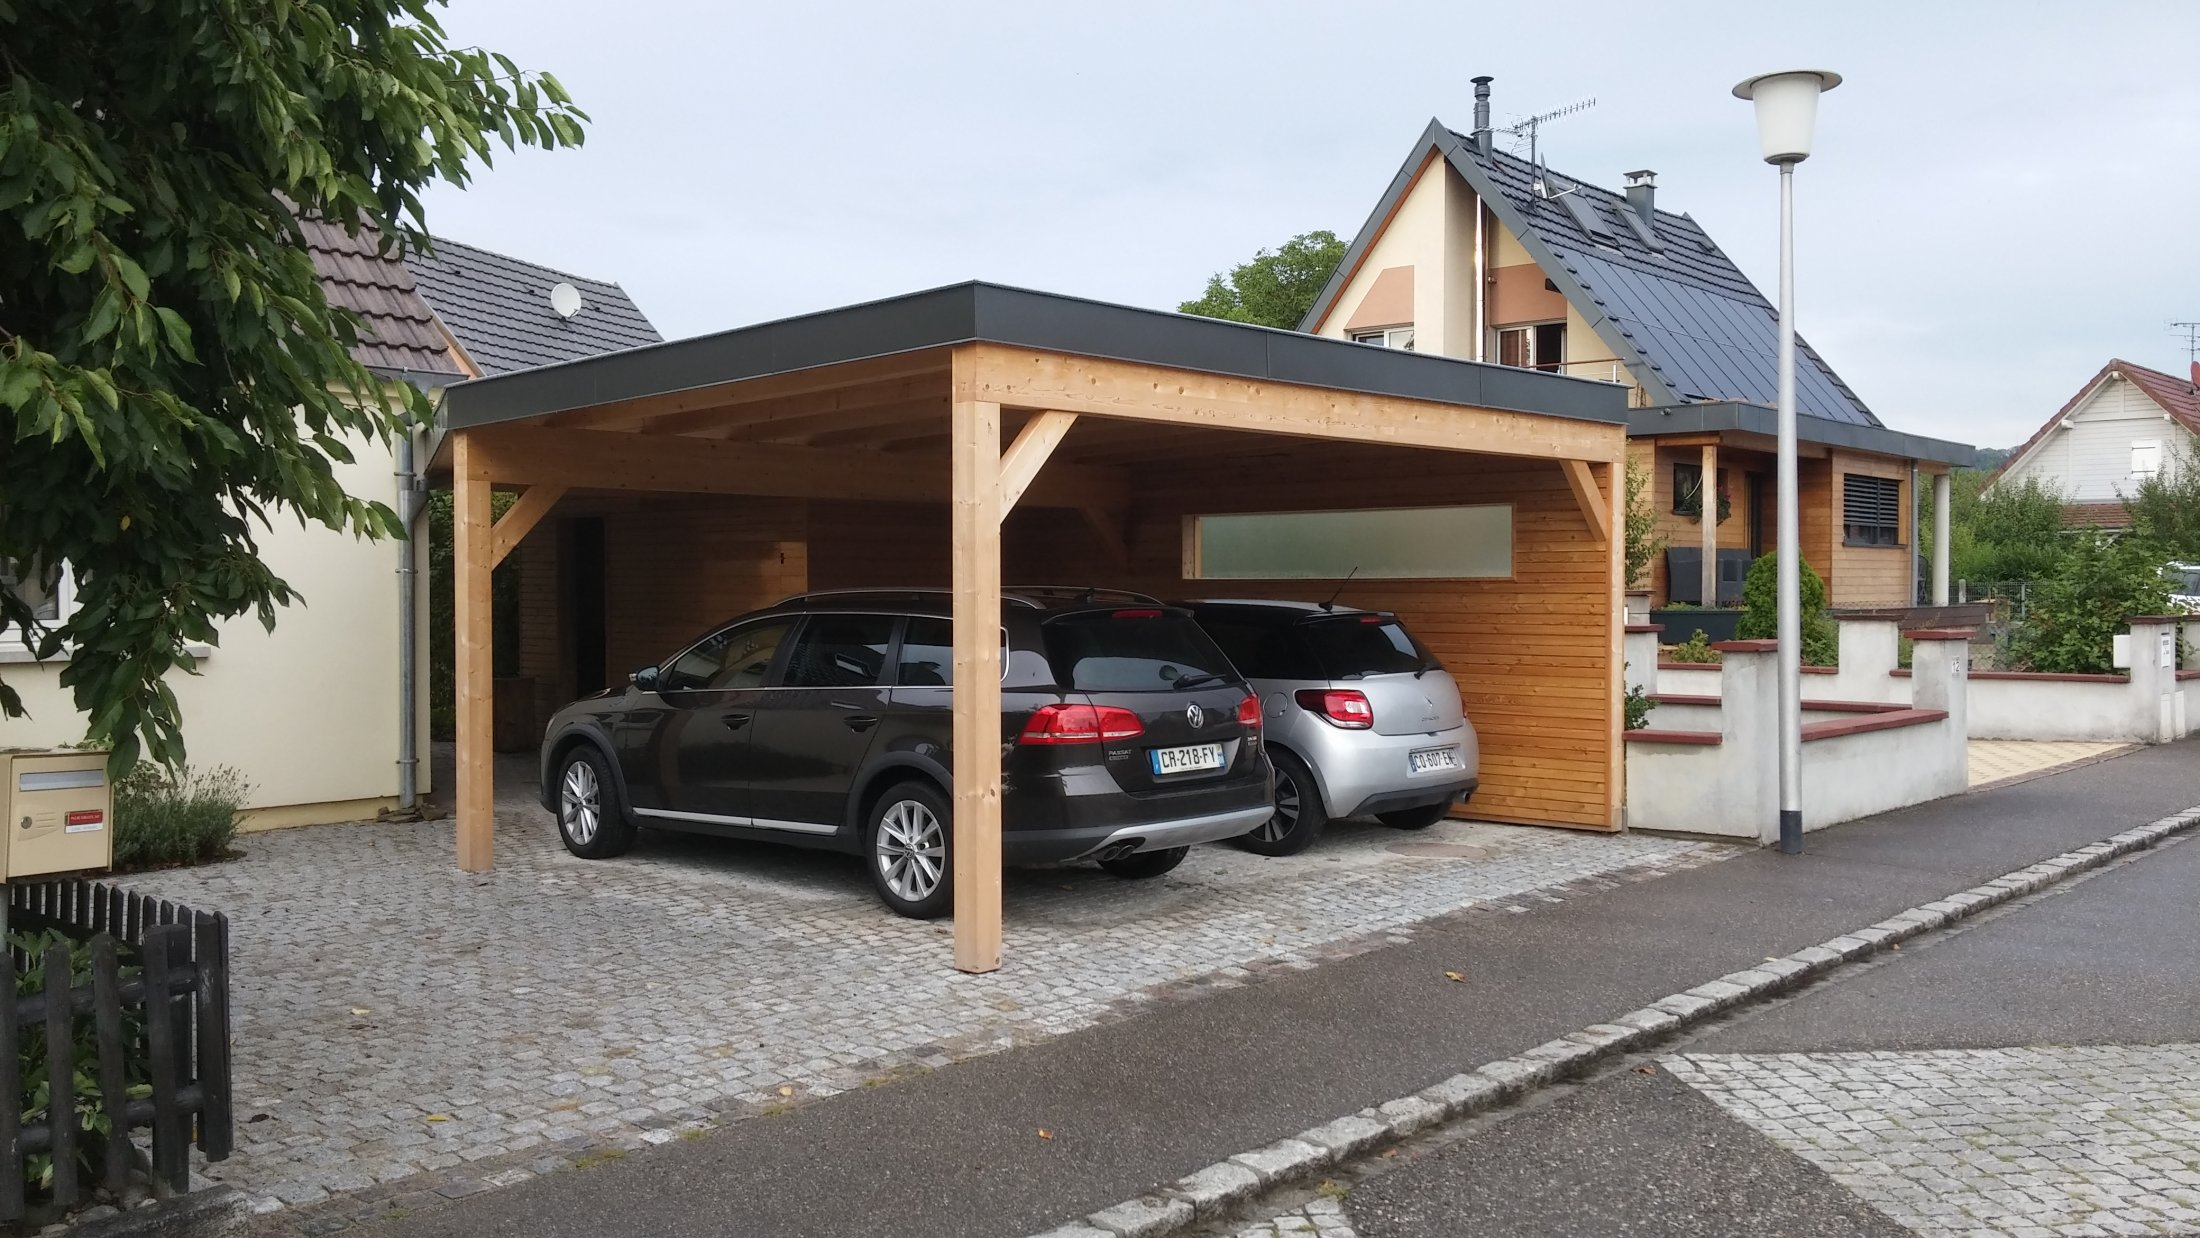 arkobois arkobois d finit avec vous votre projet carport ou garage. Black Bedroom Furniture Sets. Home Design Ideas